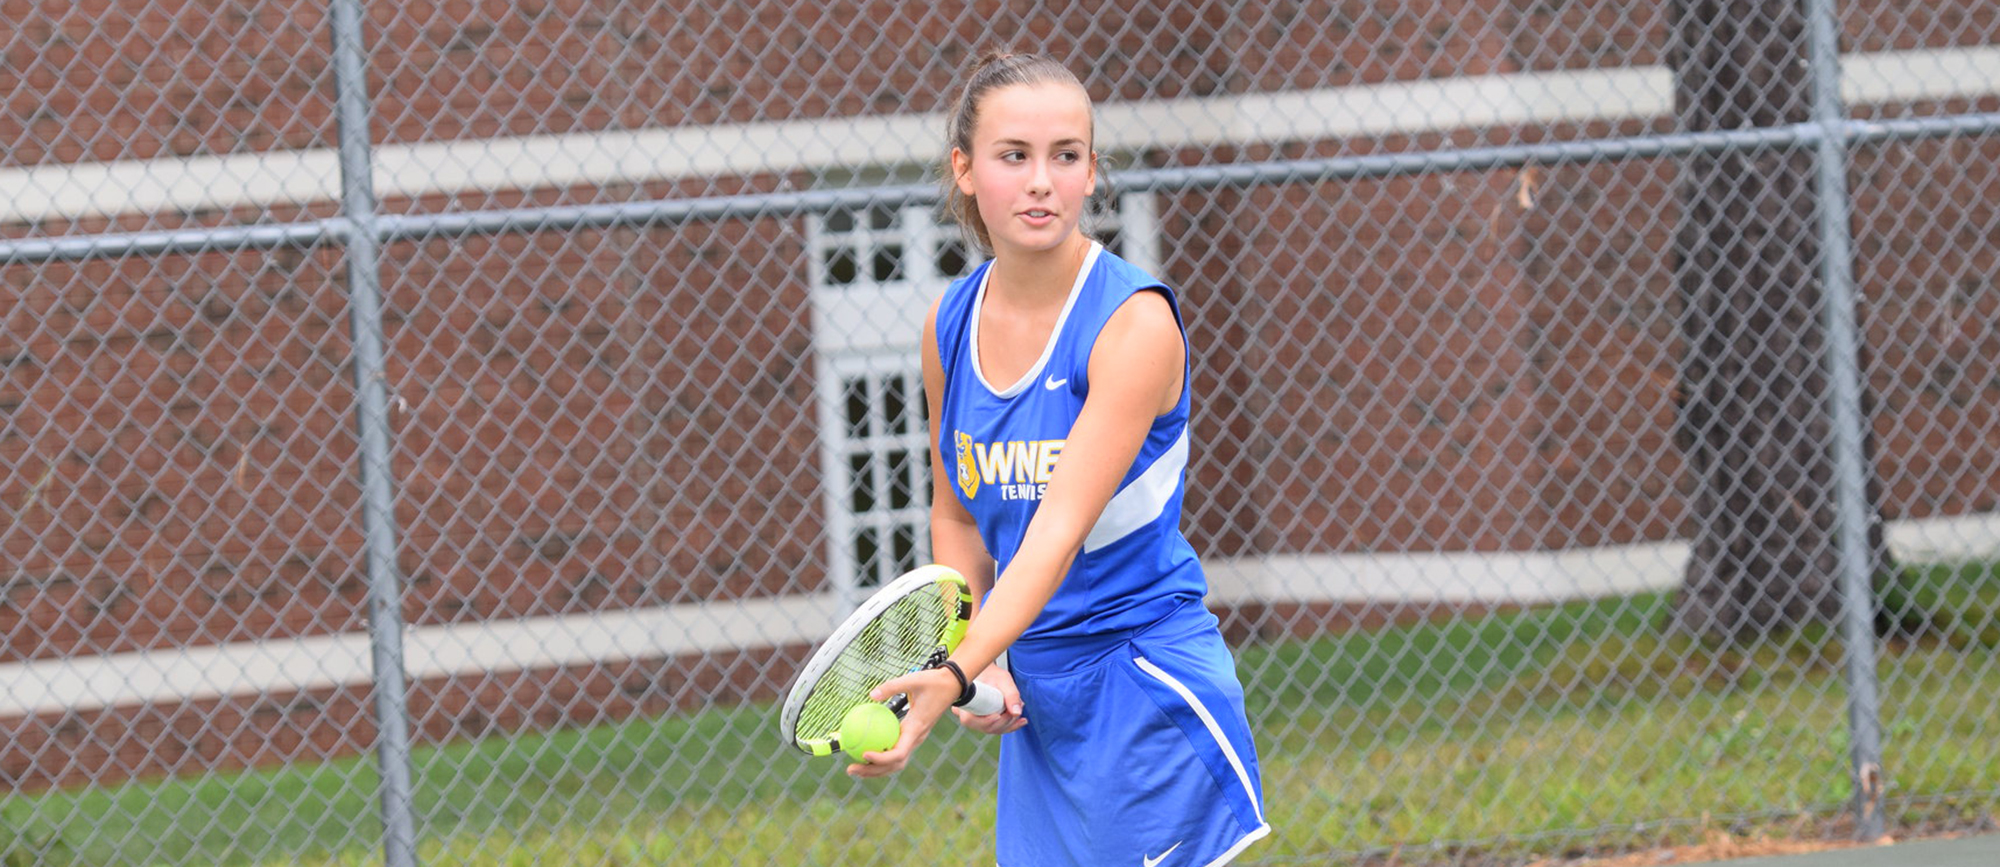 Sydney Lewis registered a 6-1, 6-0 win at No. 5 singles as WNE defeated Curry 5-0 on Wednesday. (Photo by Rachael Margossian)